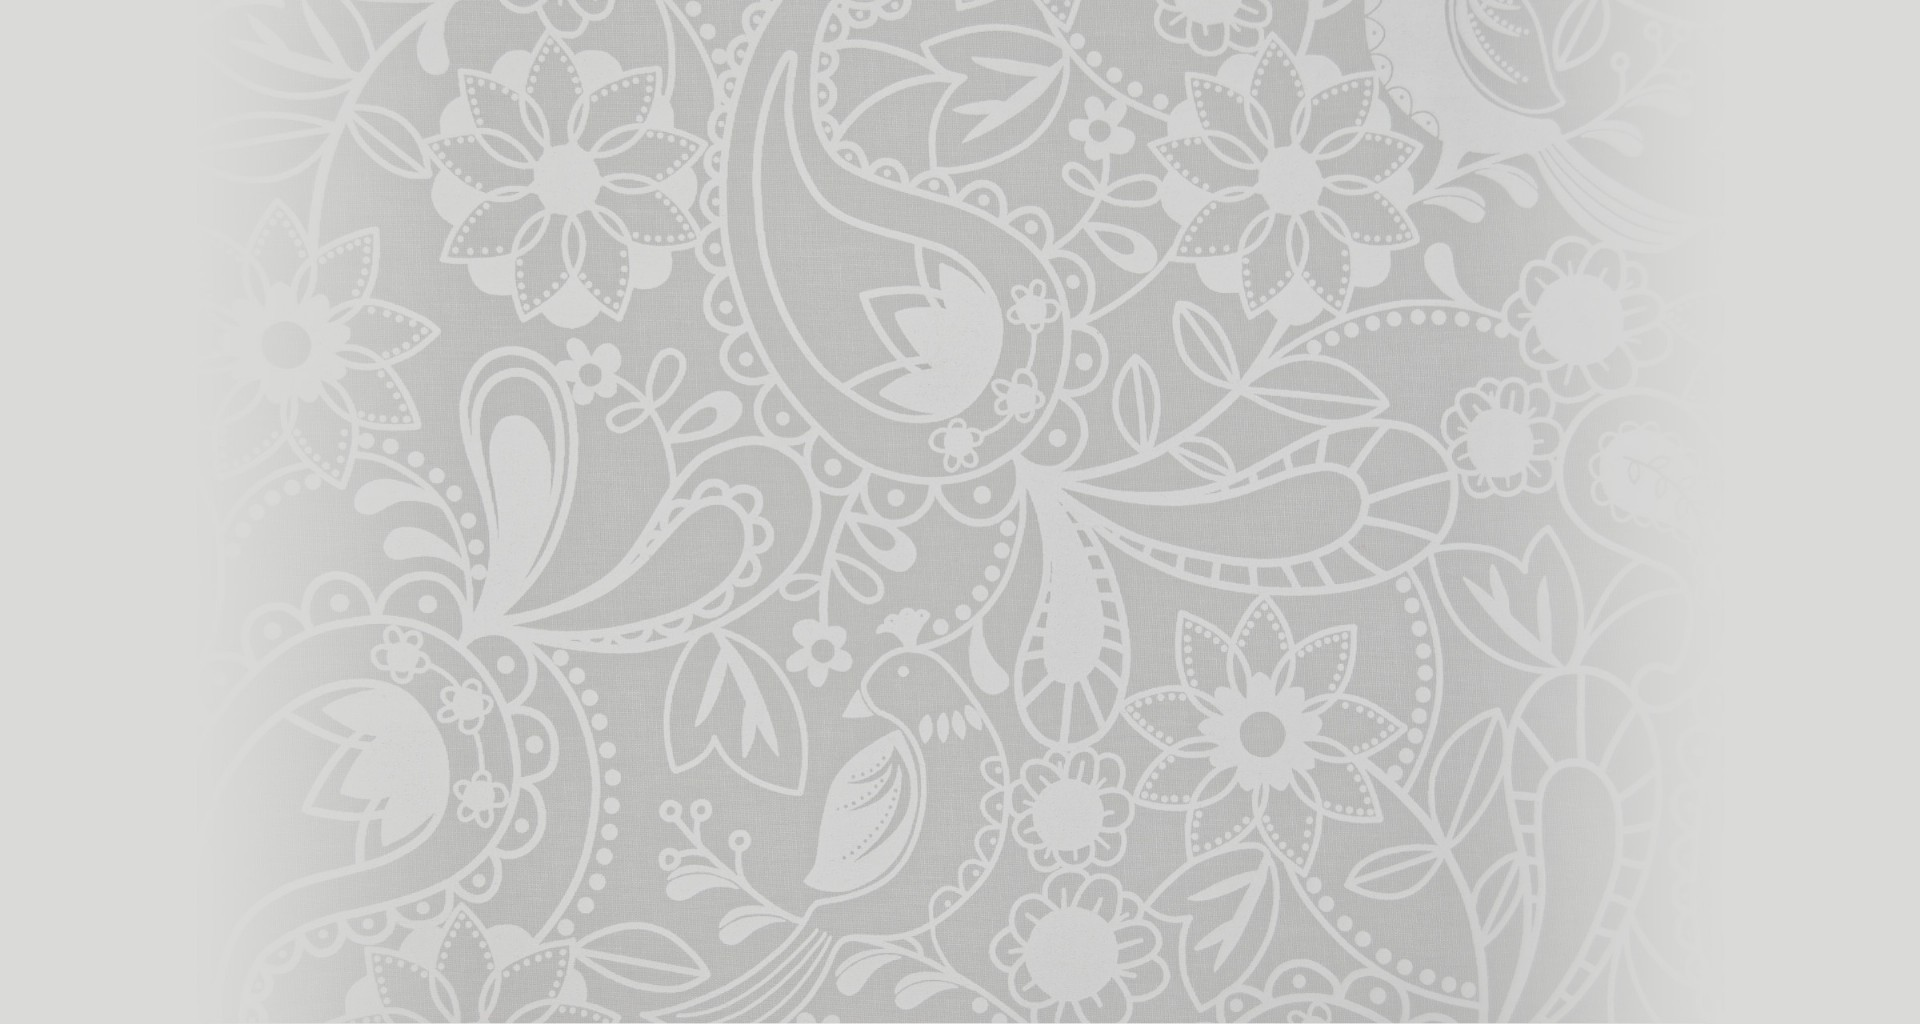 flowerpattern_3_scaled_LIGHTBOX.jpg